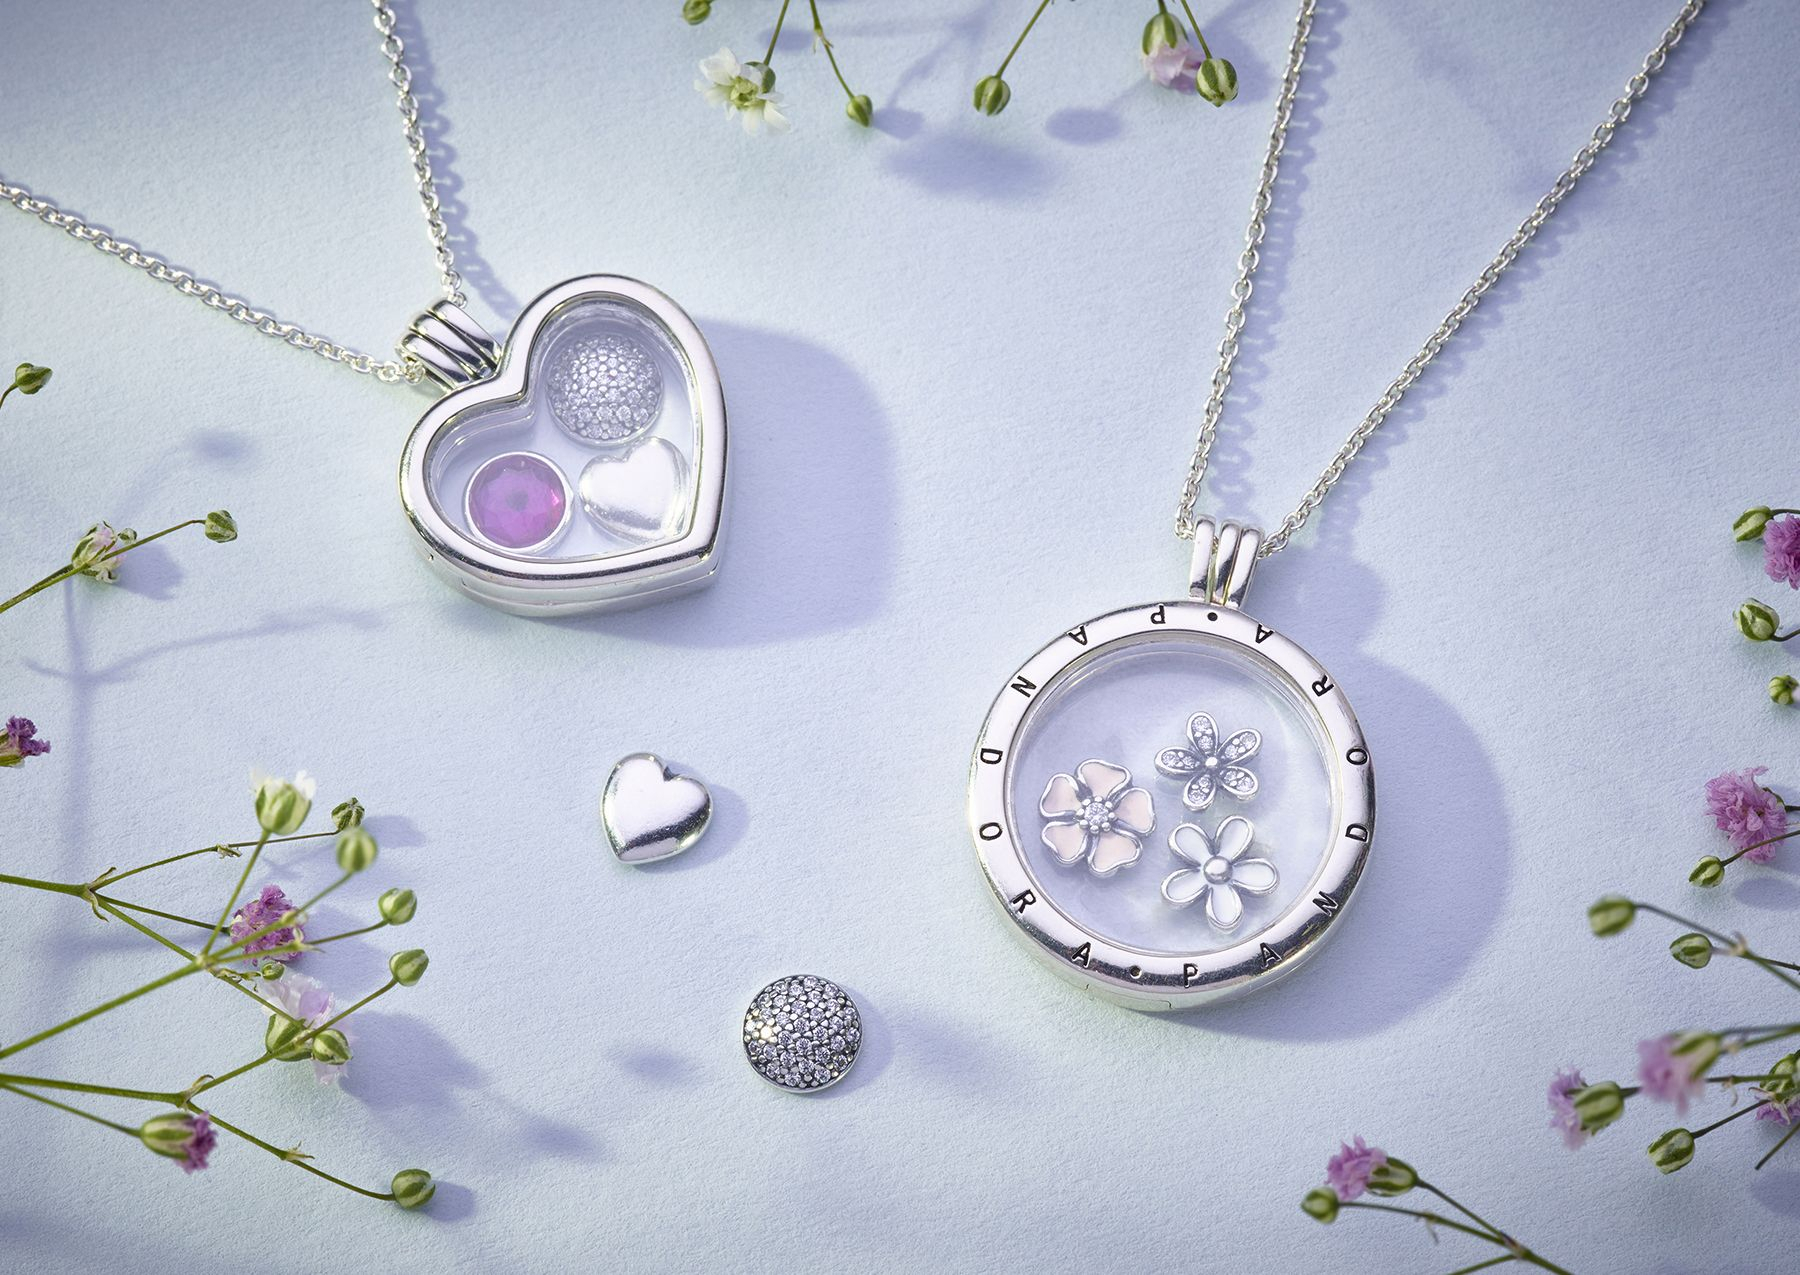 2018 Silver & Gold Jewelry Collection | Pandora Lockets In 2019 Within 2020 Pandora Lockets Logo Dangle Charm Necklaces (View 6 of 25)